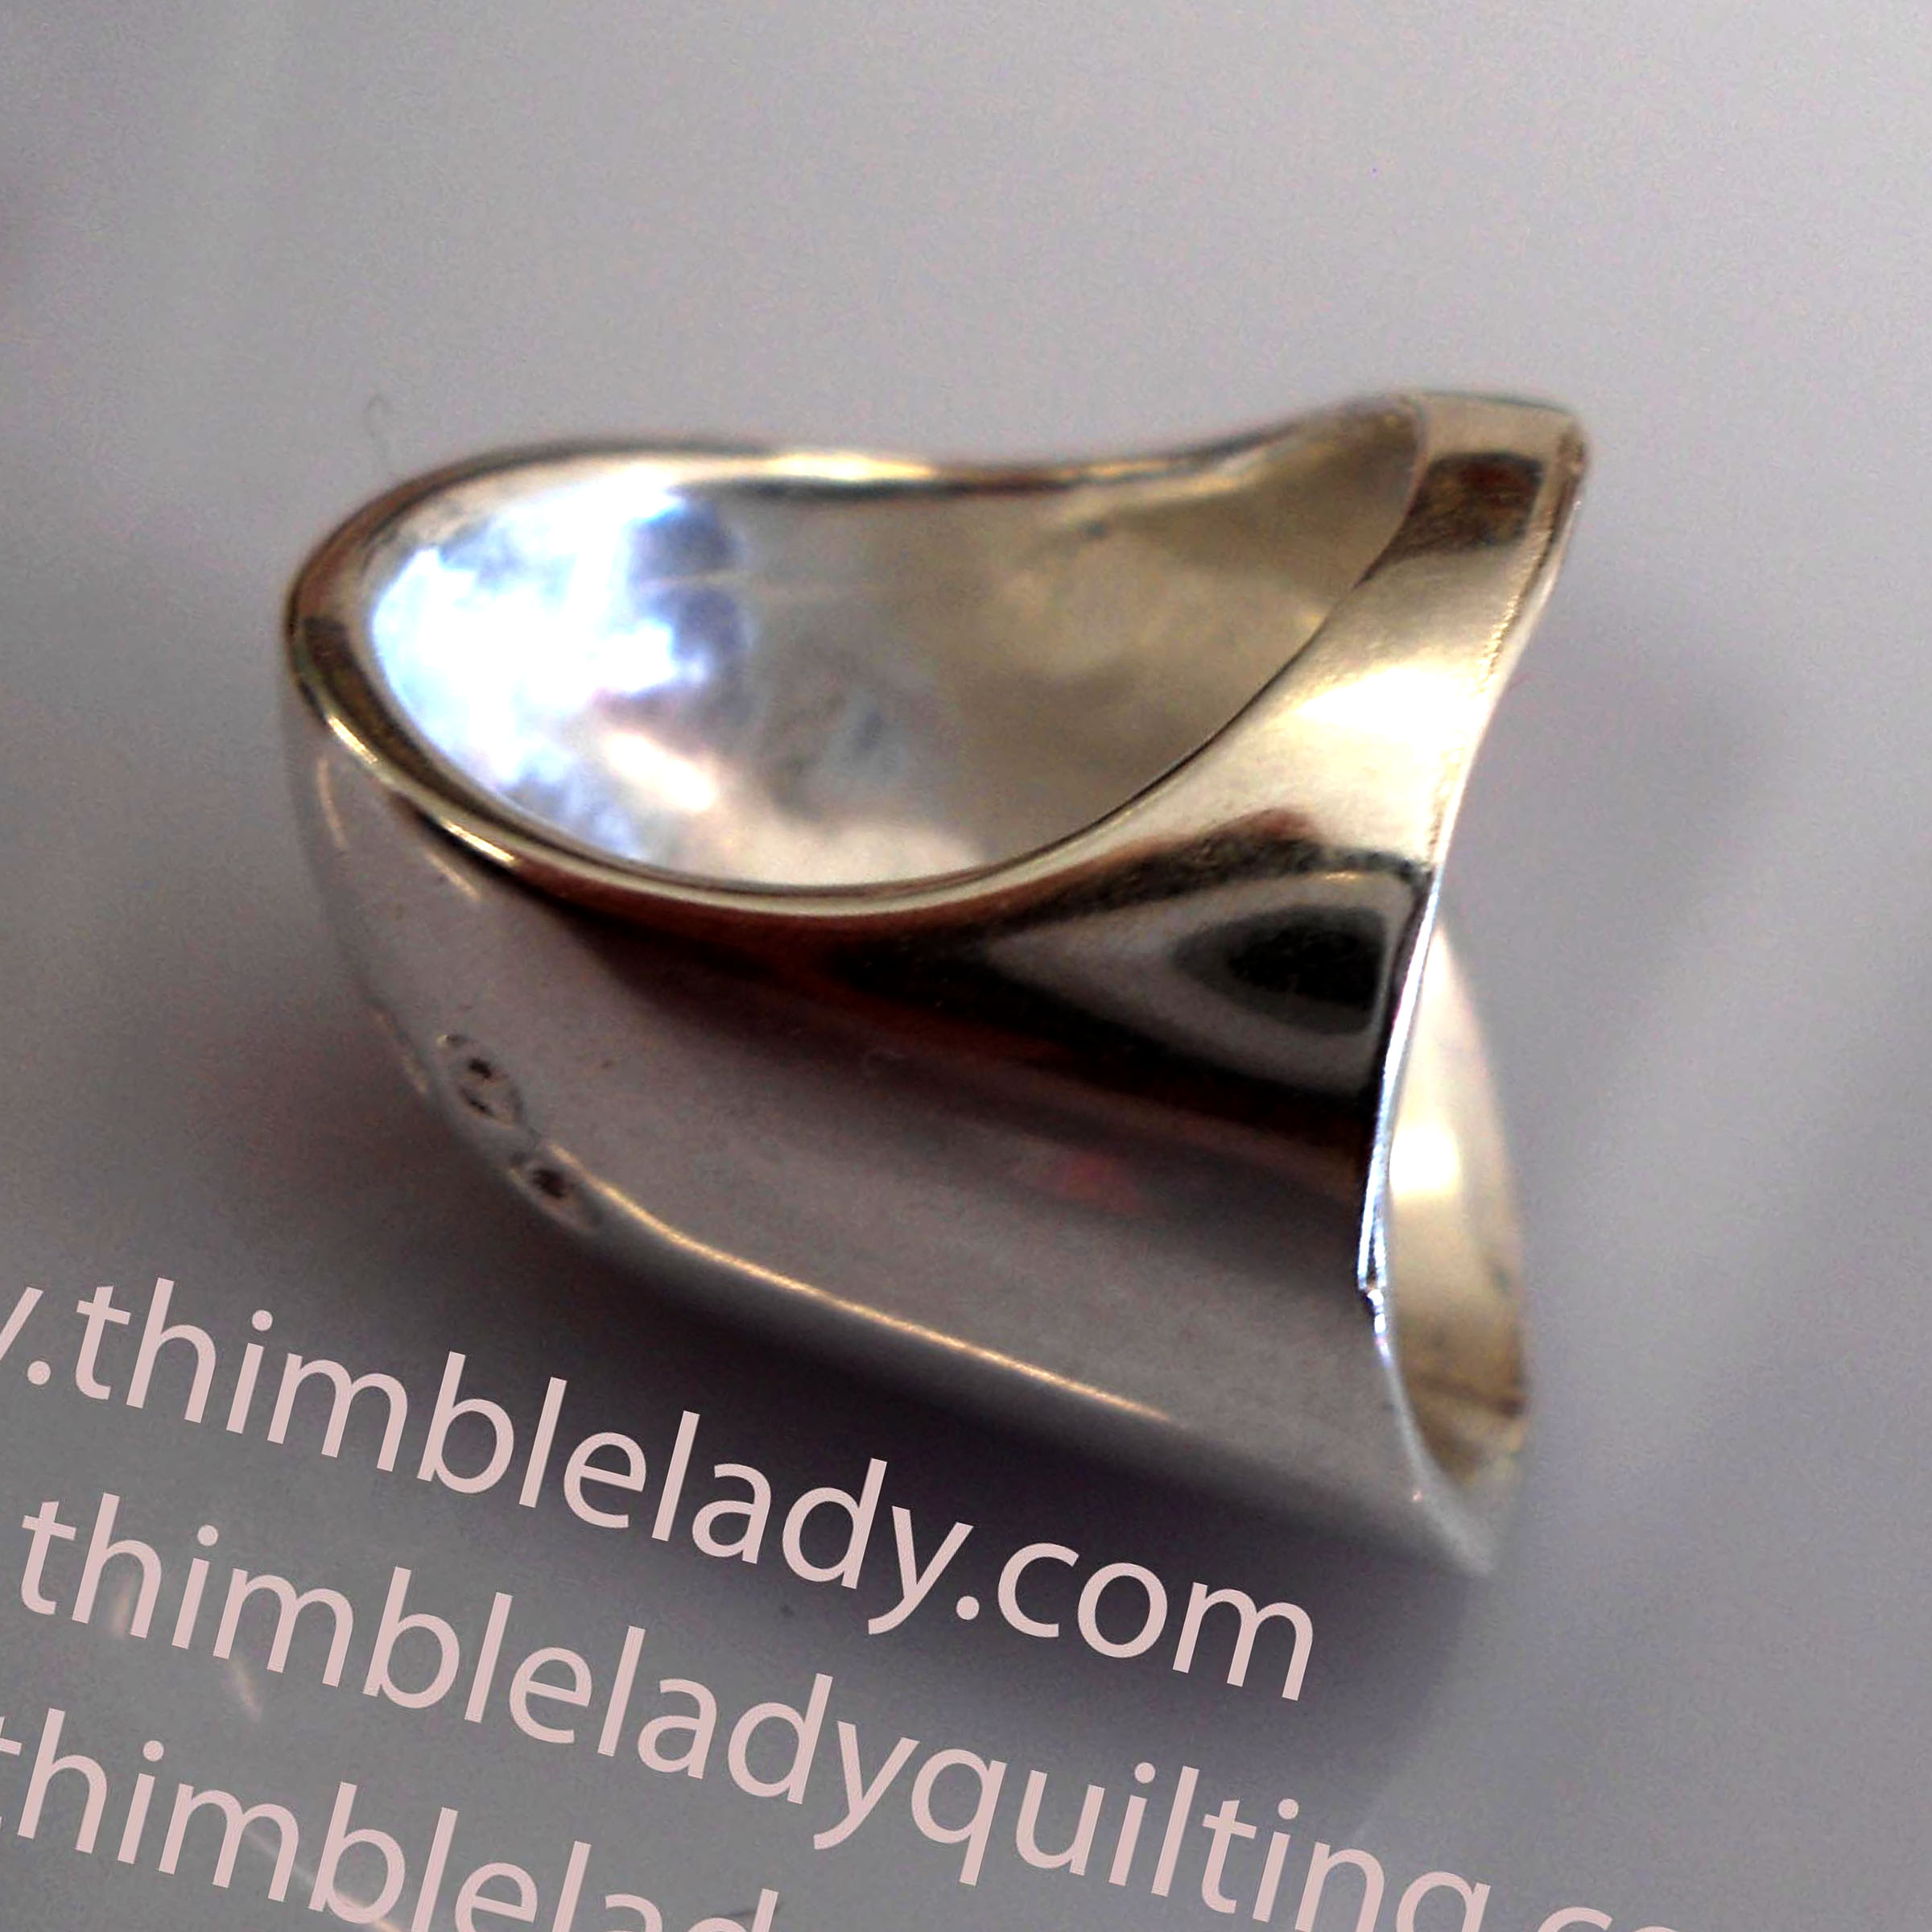 Hand Quilting Thimbles For Sale | Thimblelady's Famous Quilting ... : ladyfingers quilt shop - Adamdwight.com